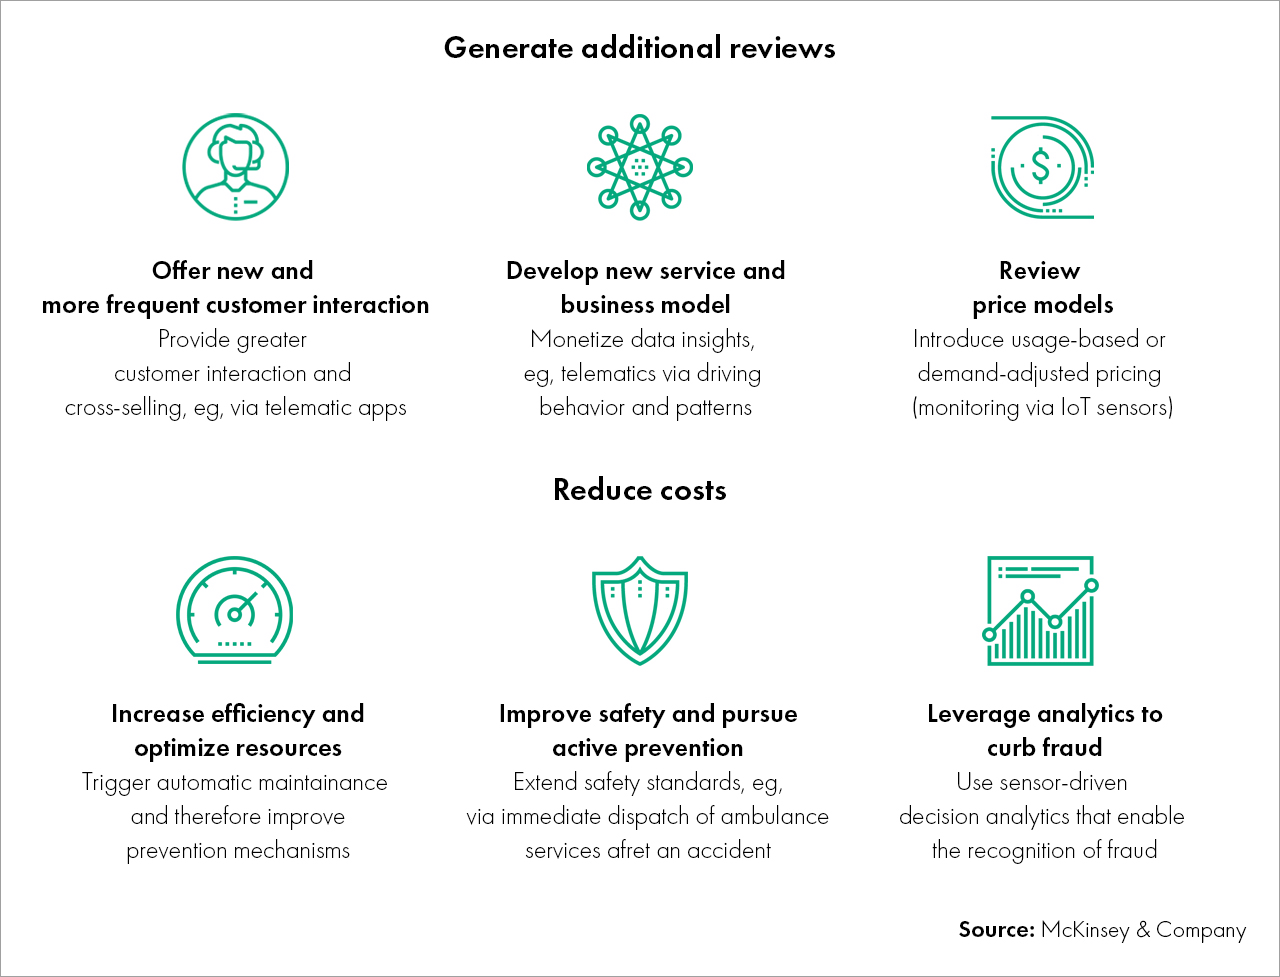 Personalization Reviews Cost Reduction